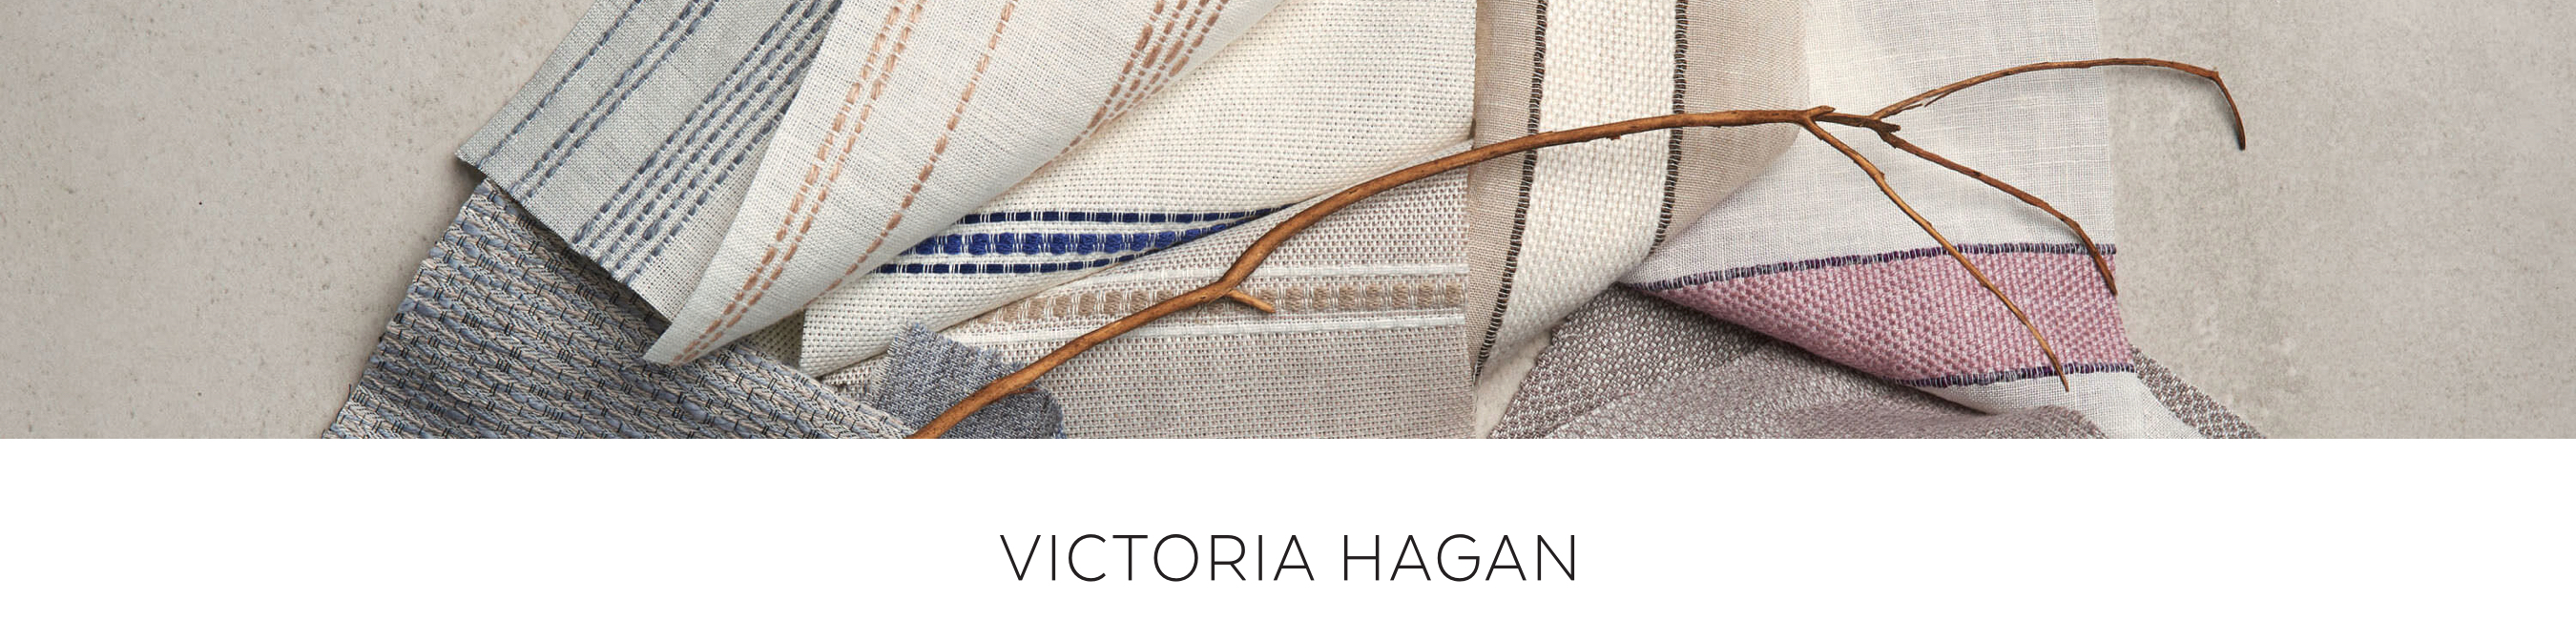 Victoria Hagan for The Shade Store